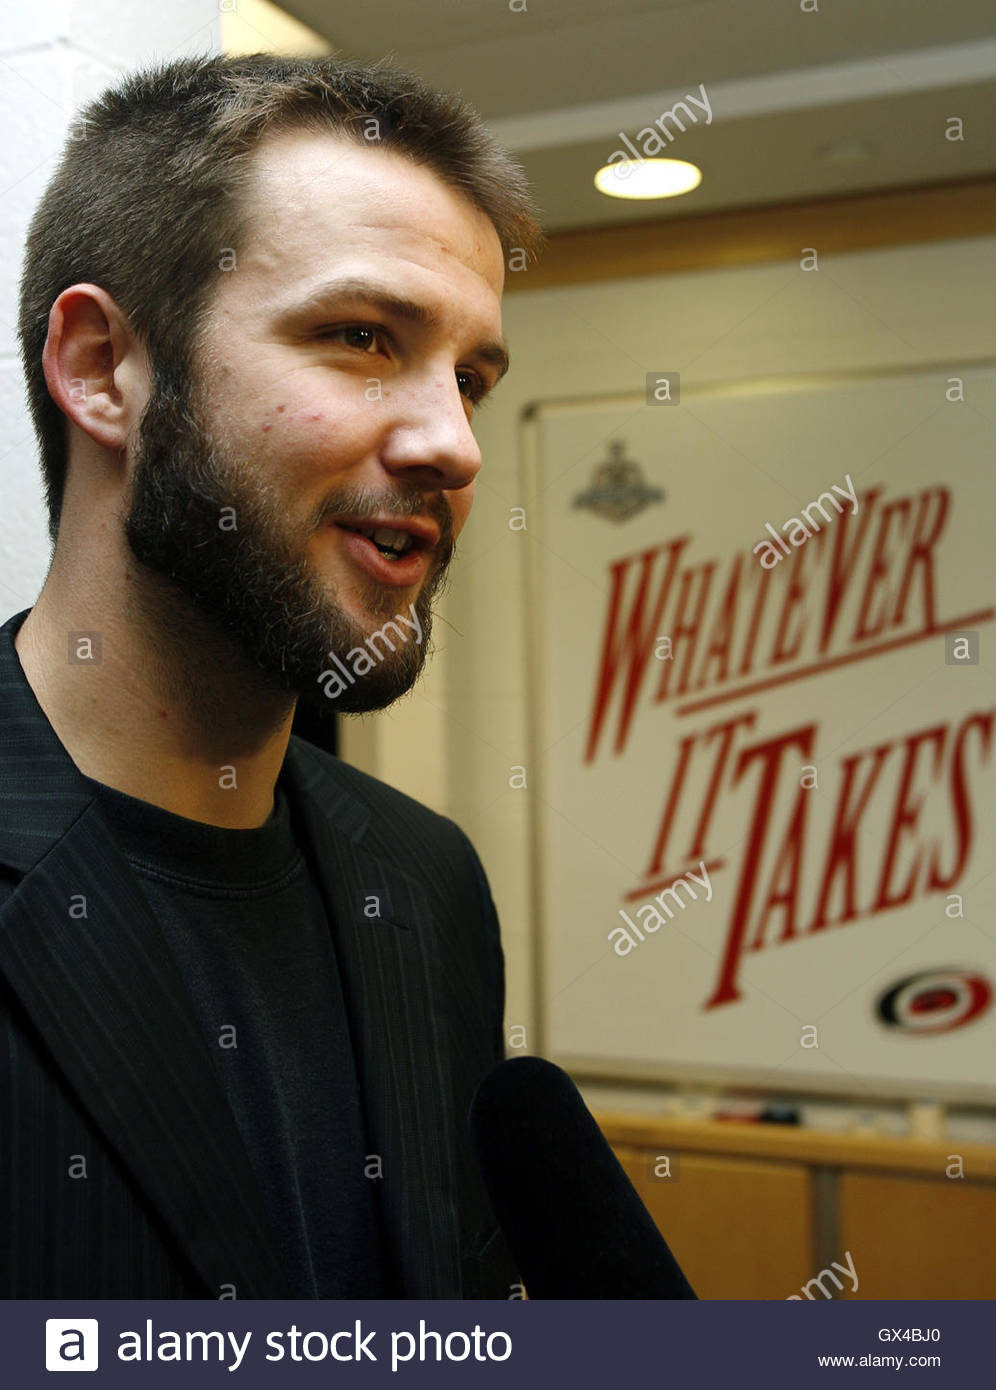 caroline hurricanes goalie cam ward answers reporters questions caroline hurricanes goalie cam ward answers reporters questions next to a motivational sign inside his team s